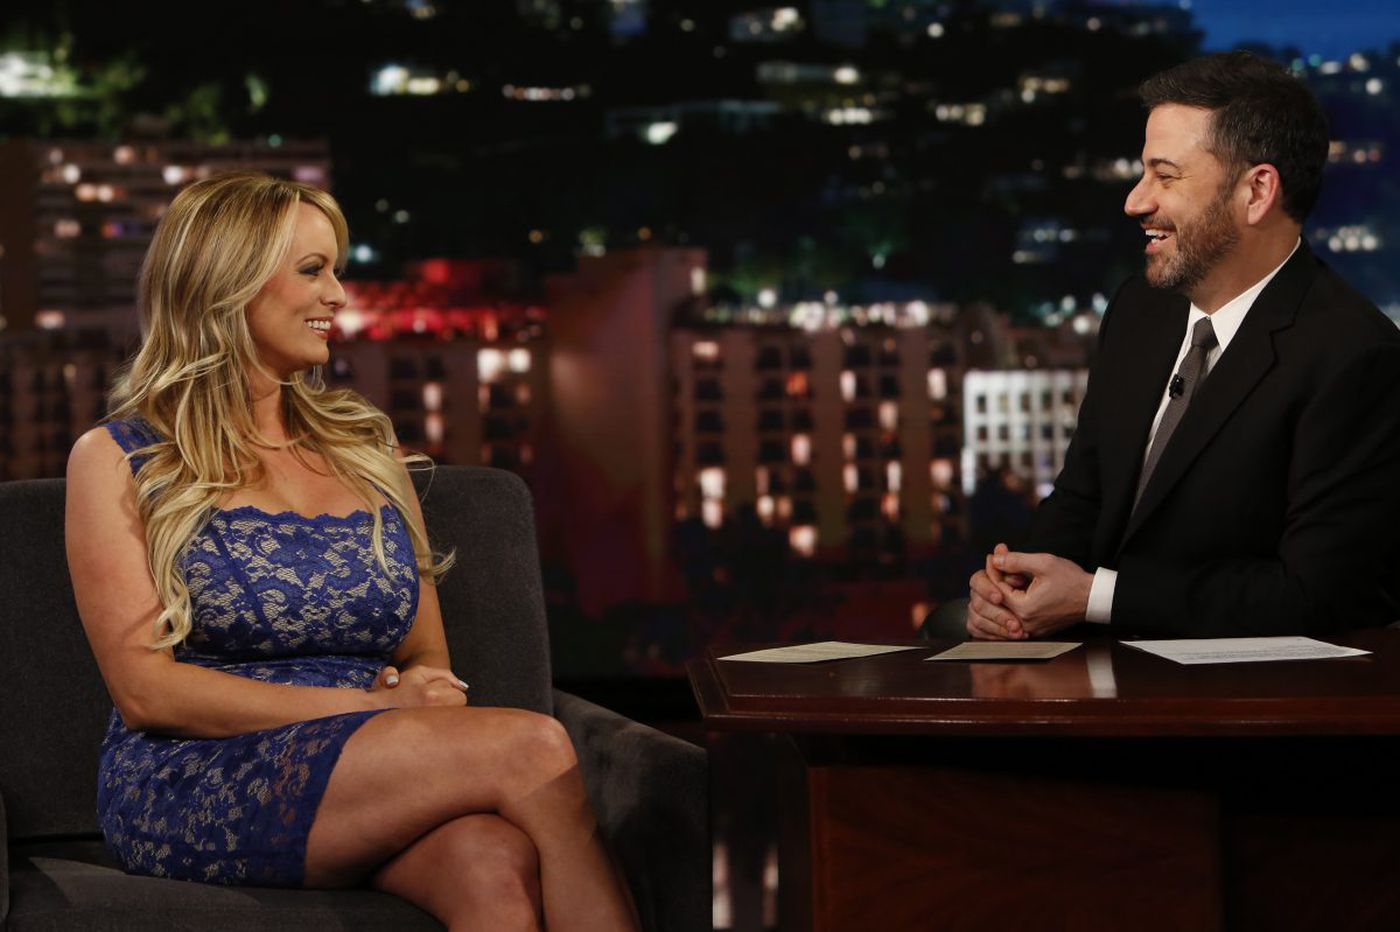 Amid publicity tour, Stormy Daniels denies affair with Trump